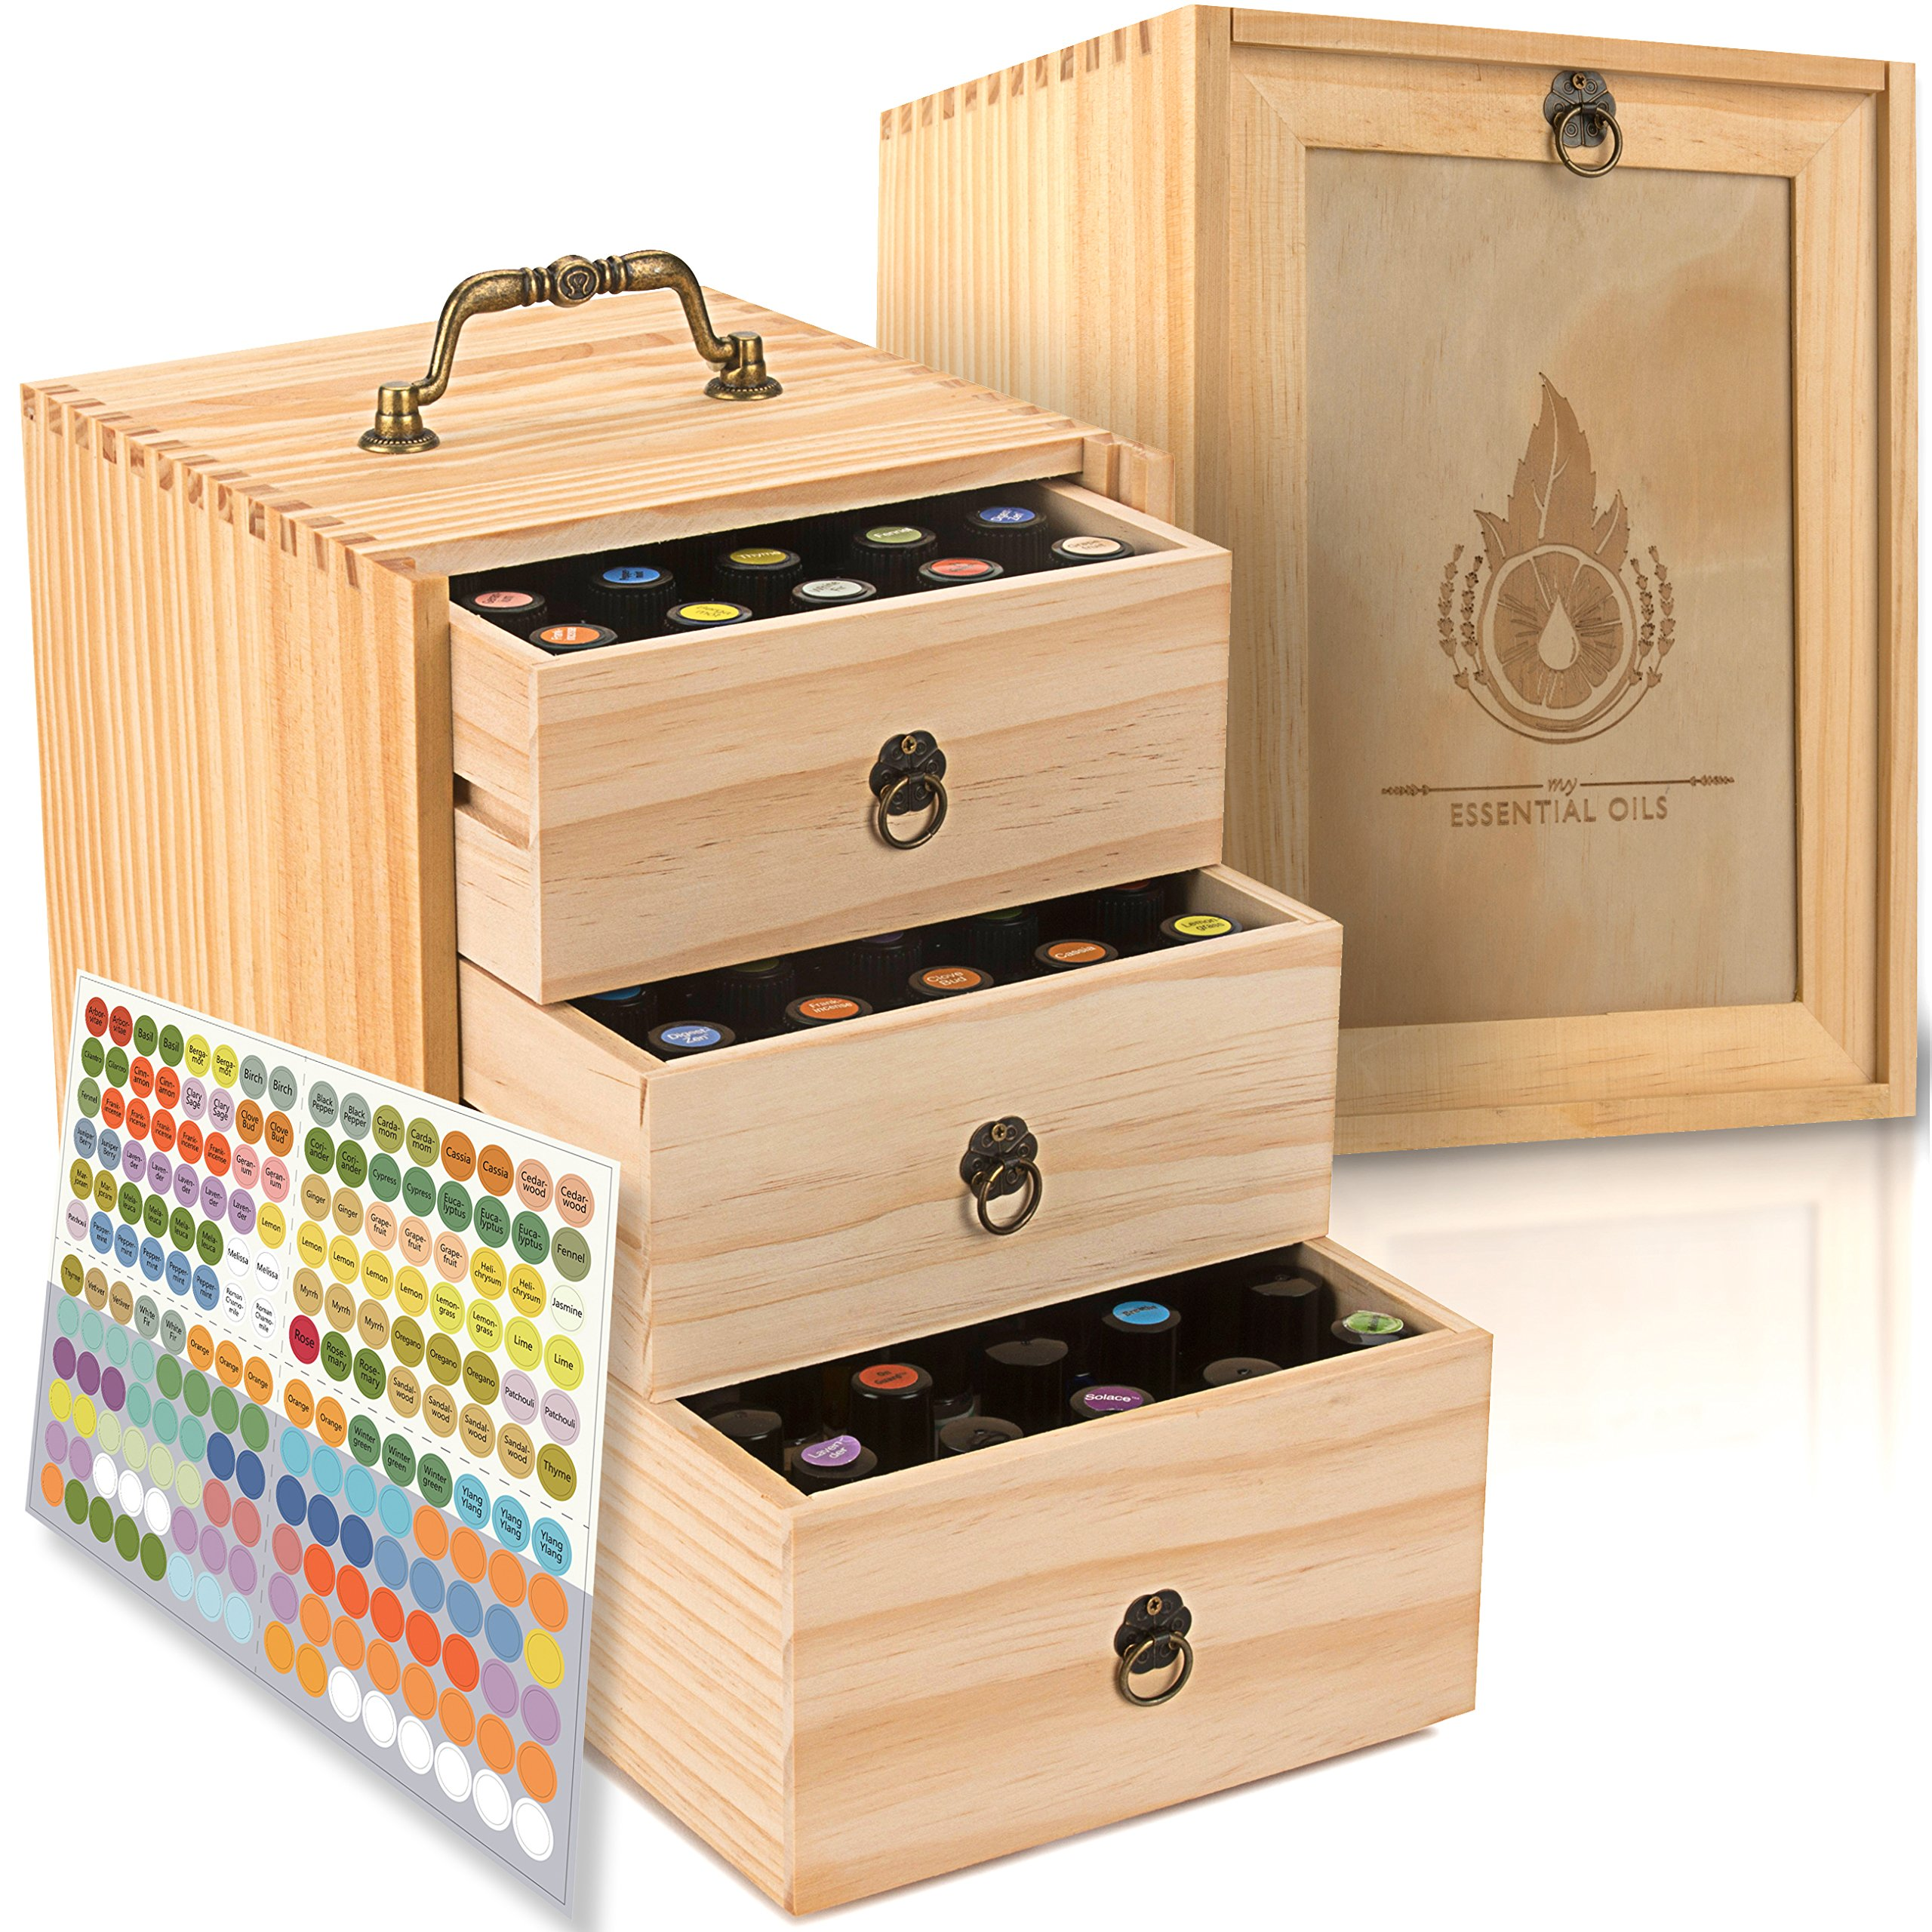 Amazon Com Essential Oil Box Wooden Storage Chest With